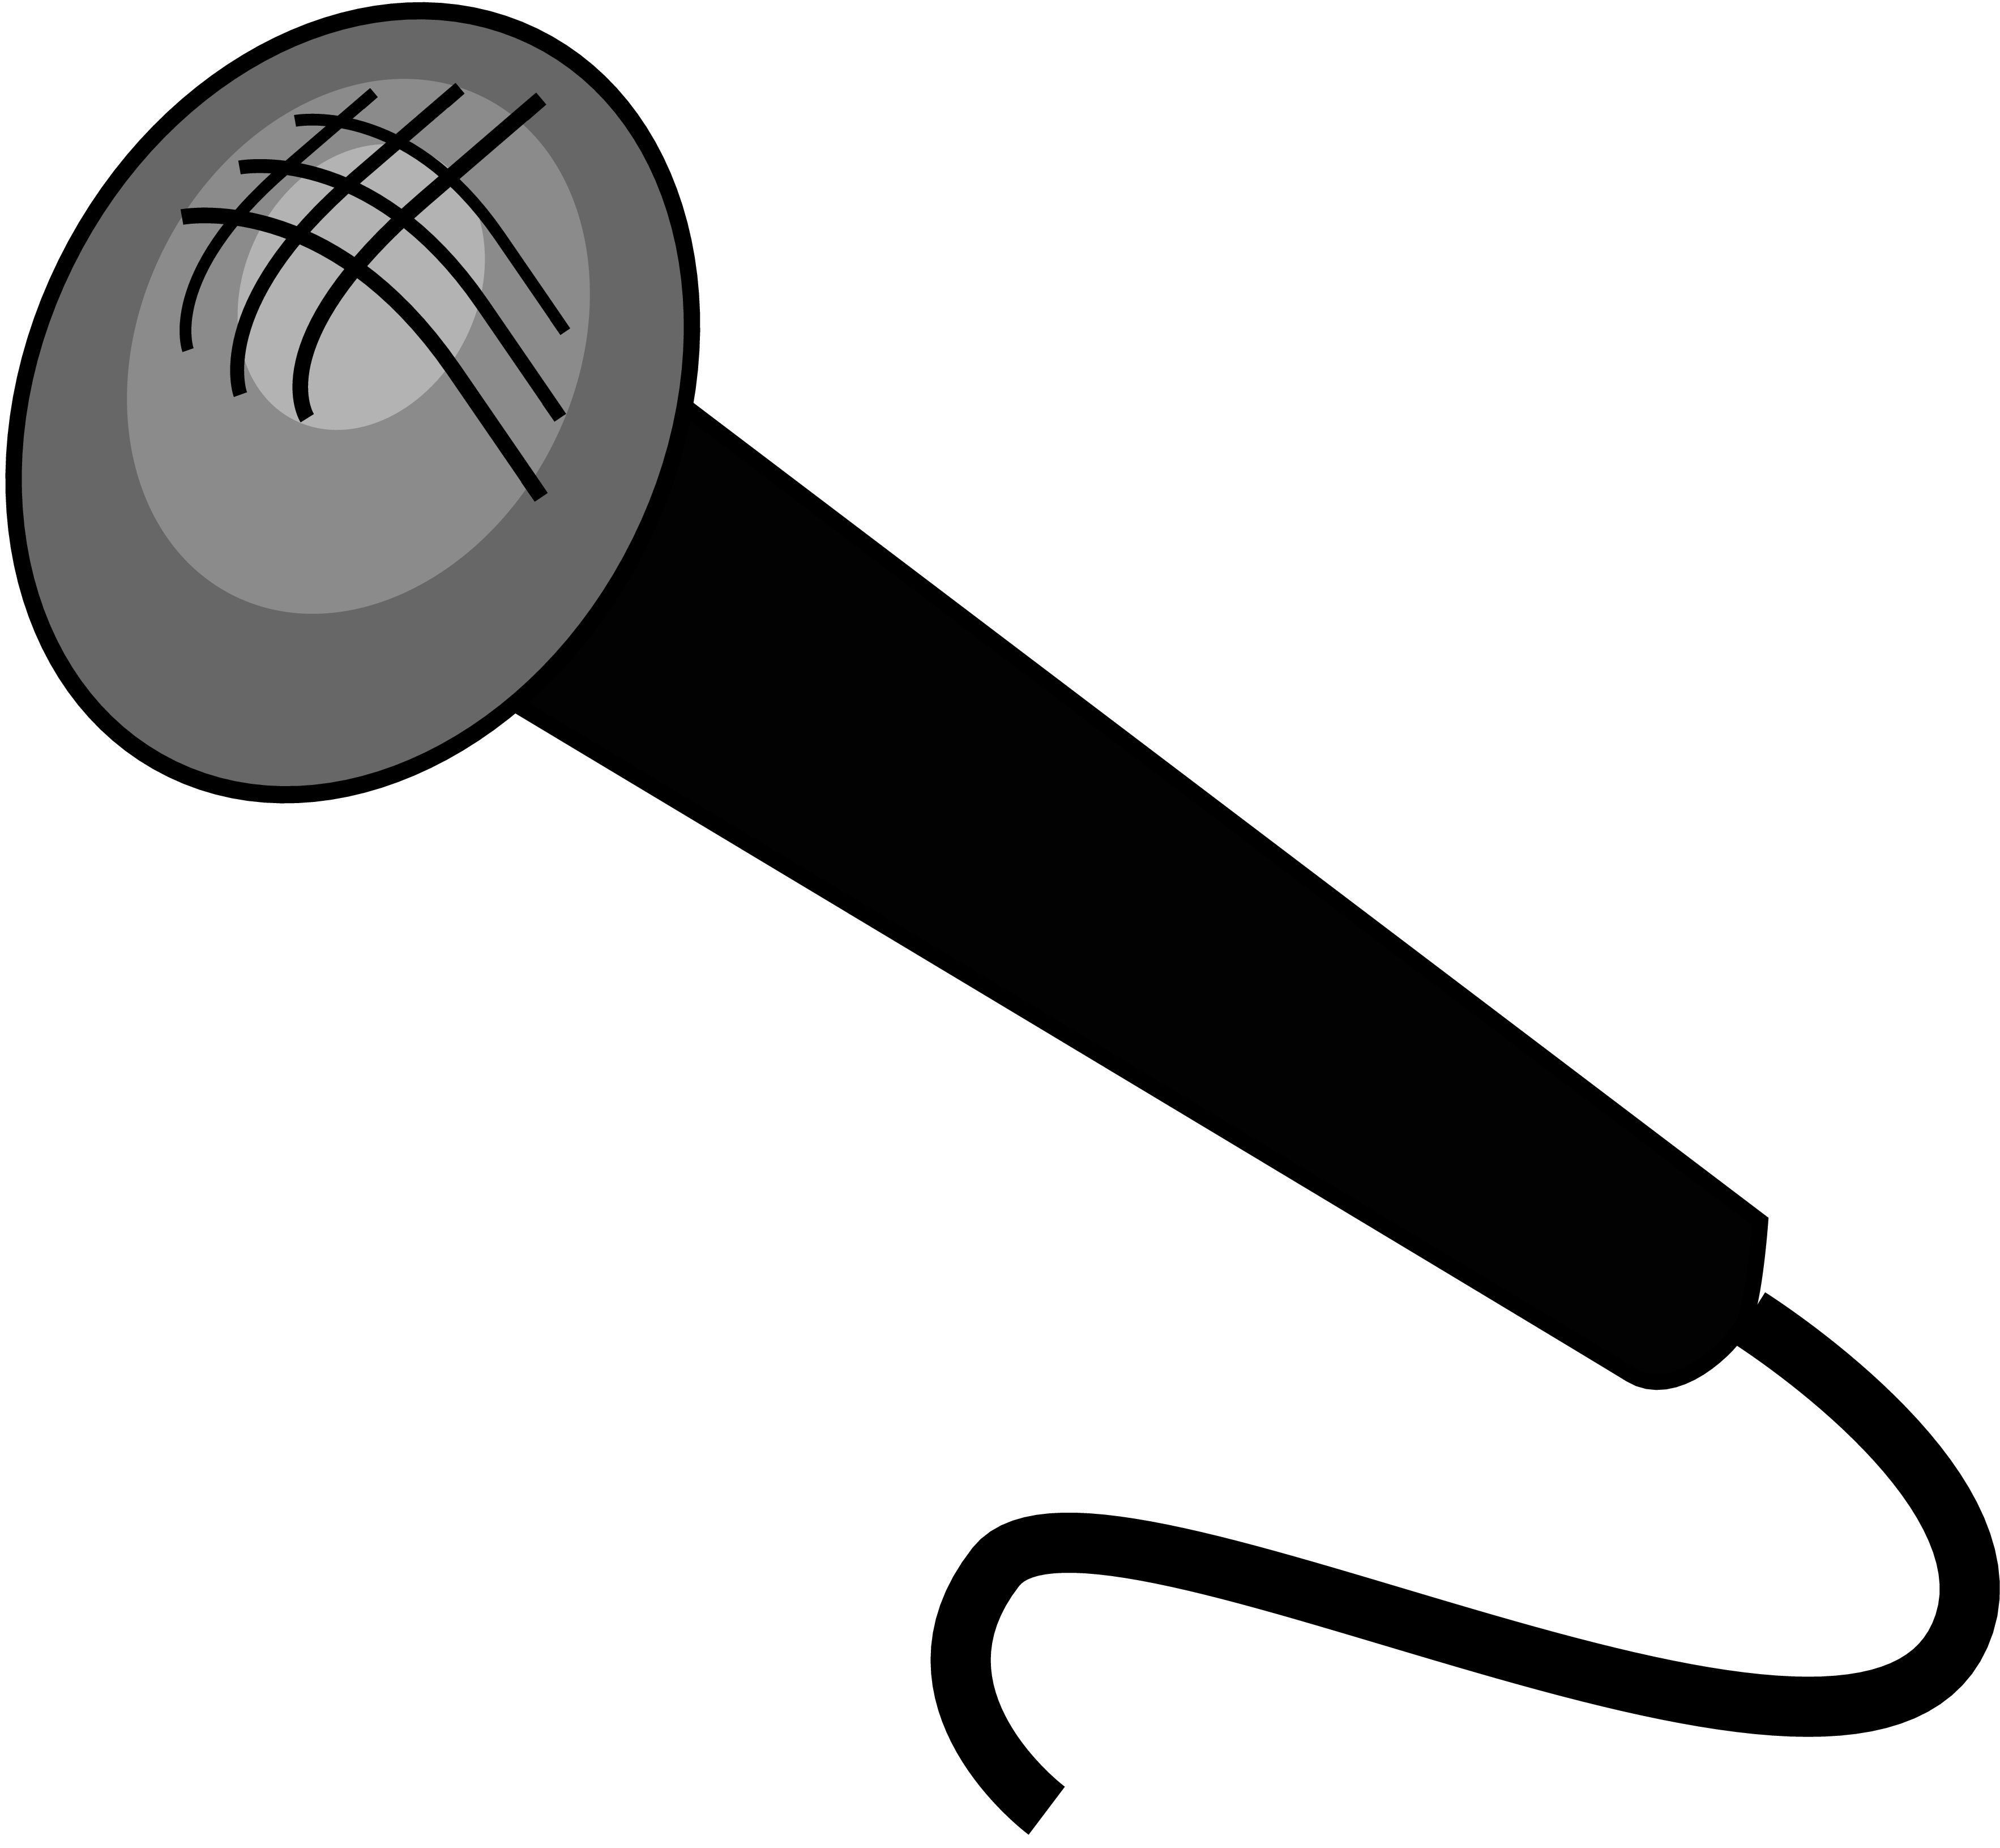 microphone png animated